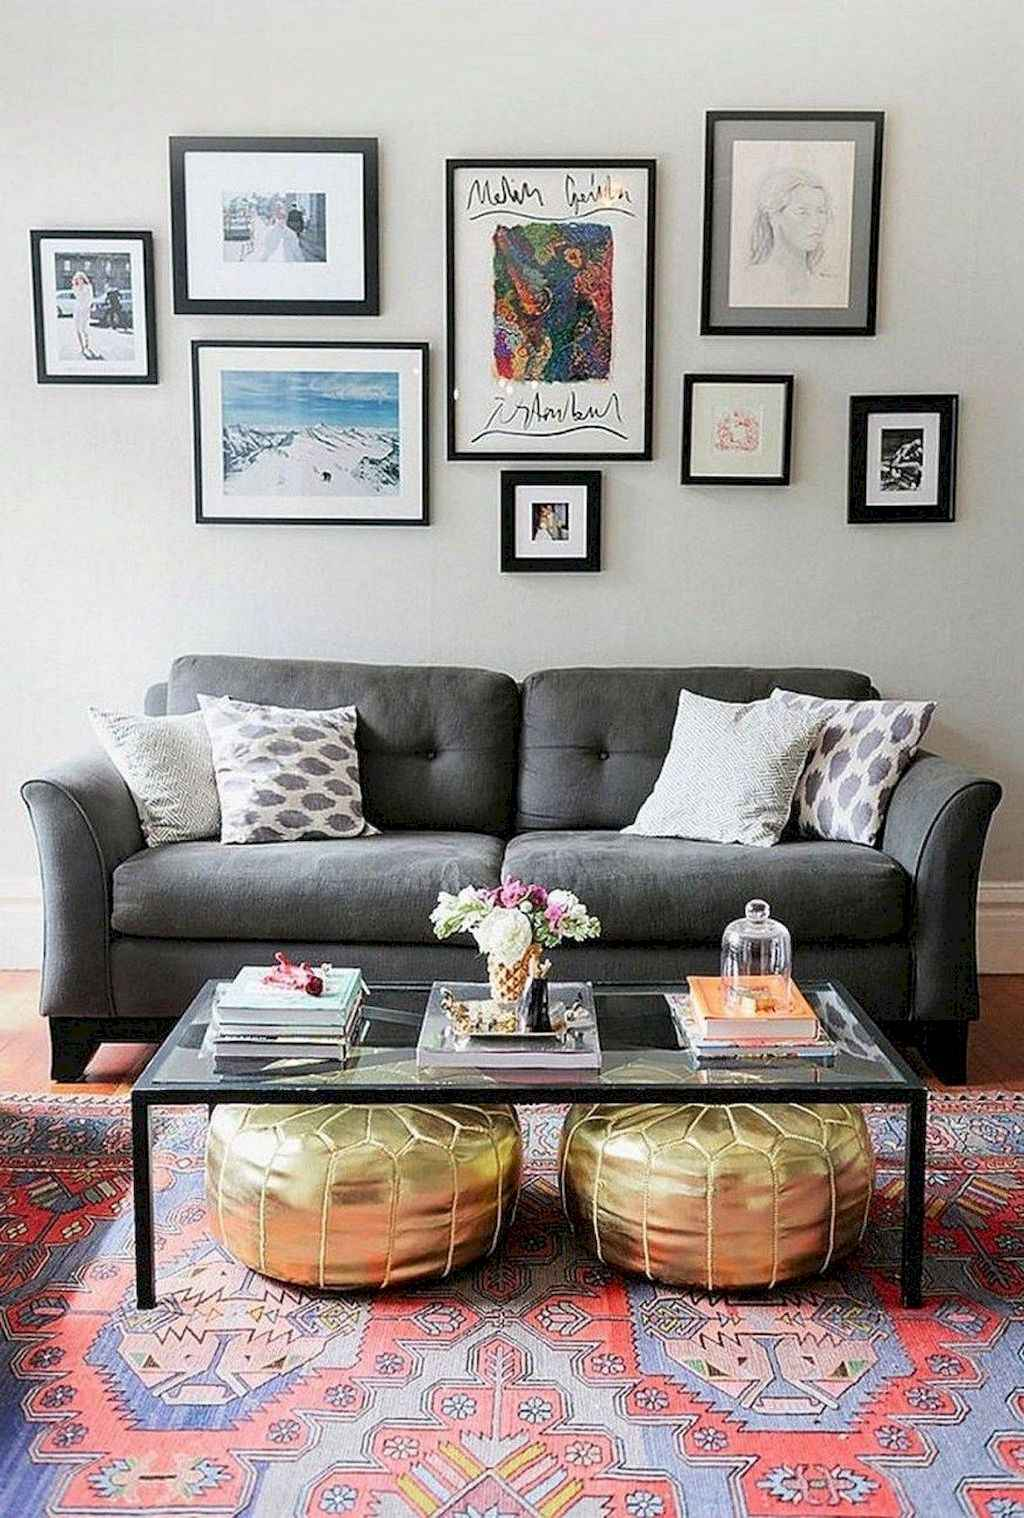 Amazing small first apartment decorating ideas (32)